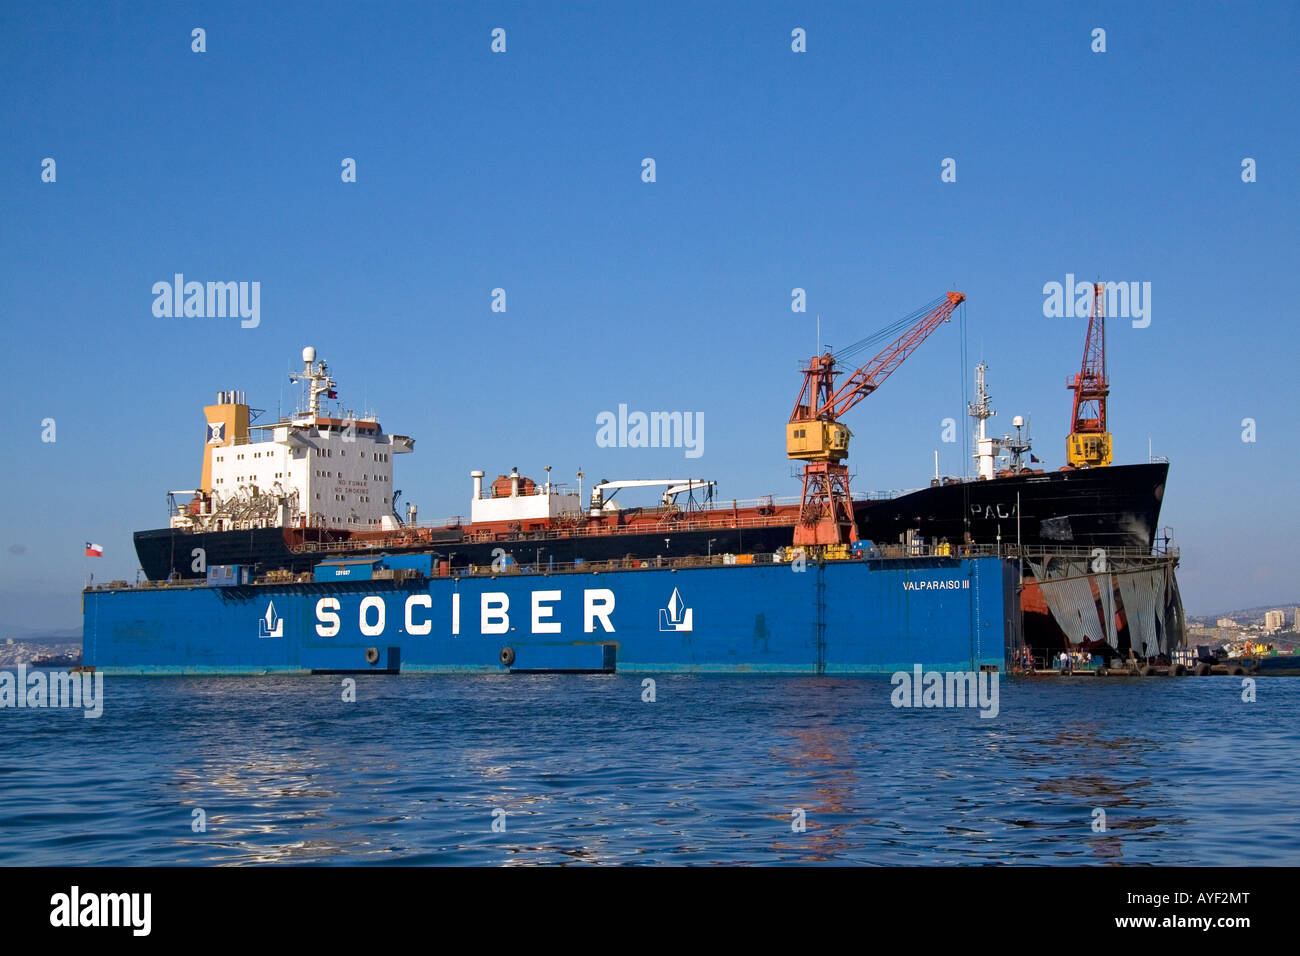 Floating dry dock with container ship in the Port at Valparaiso Chile - Stock Image